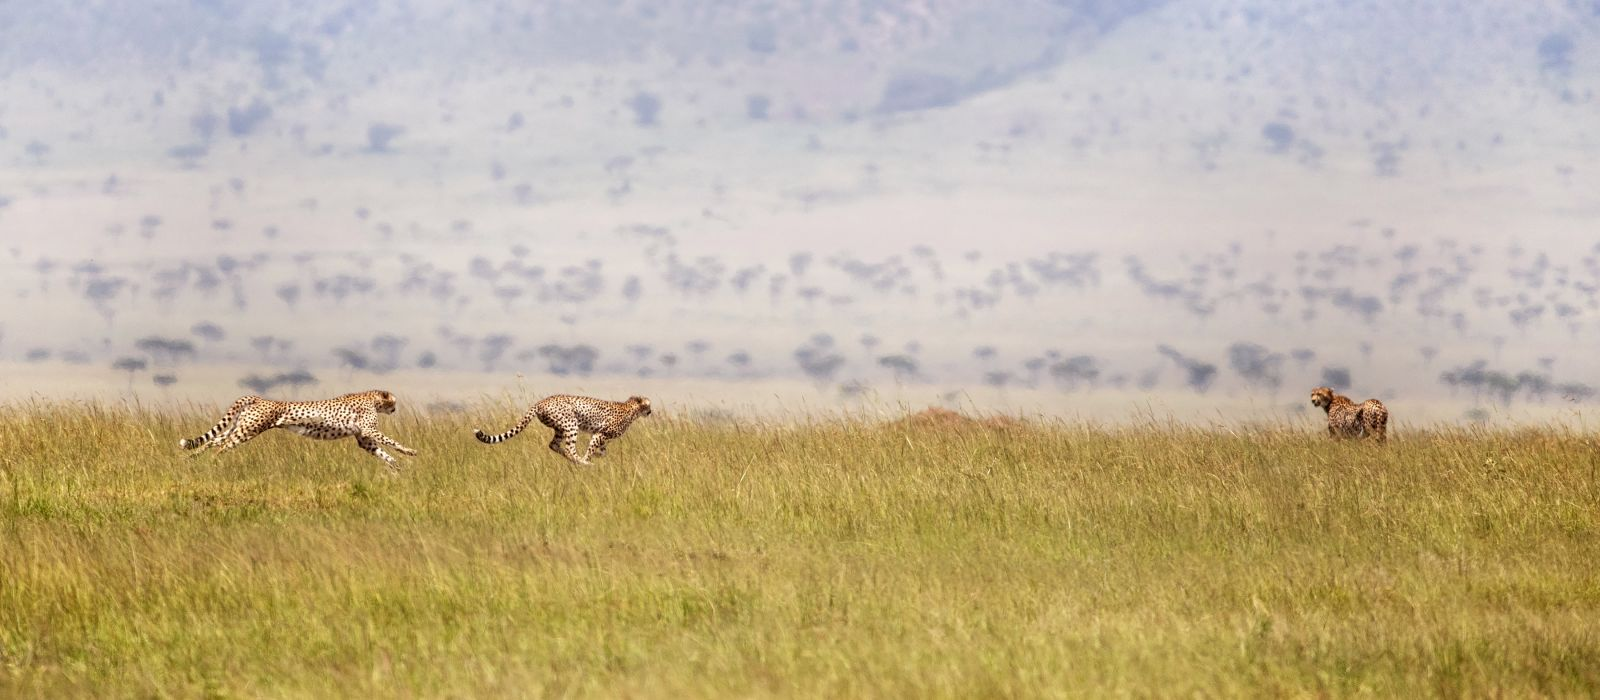 Three cheetahs running through the Masai Mara, Kenya, Africa